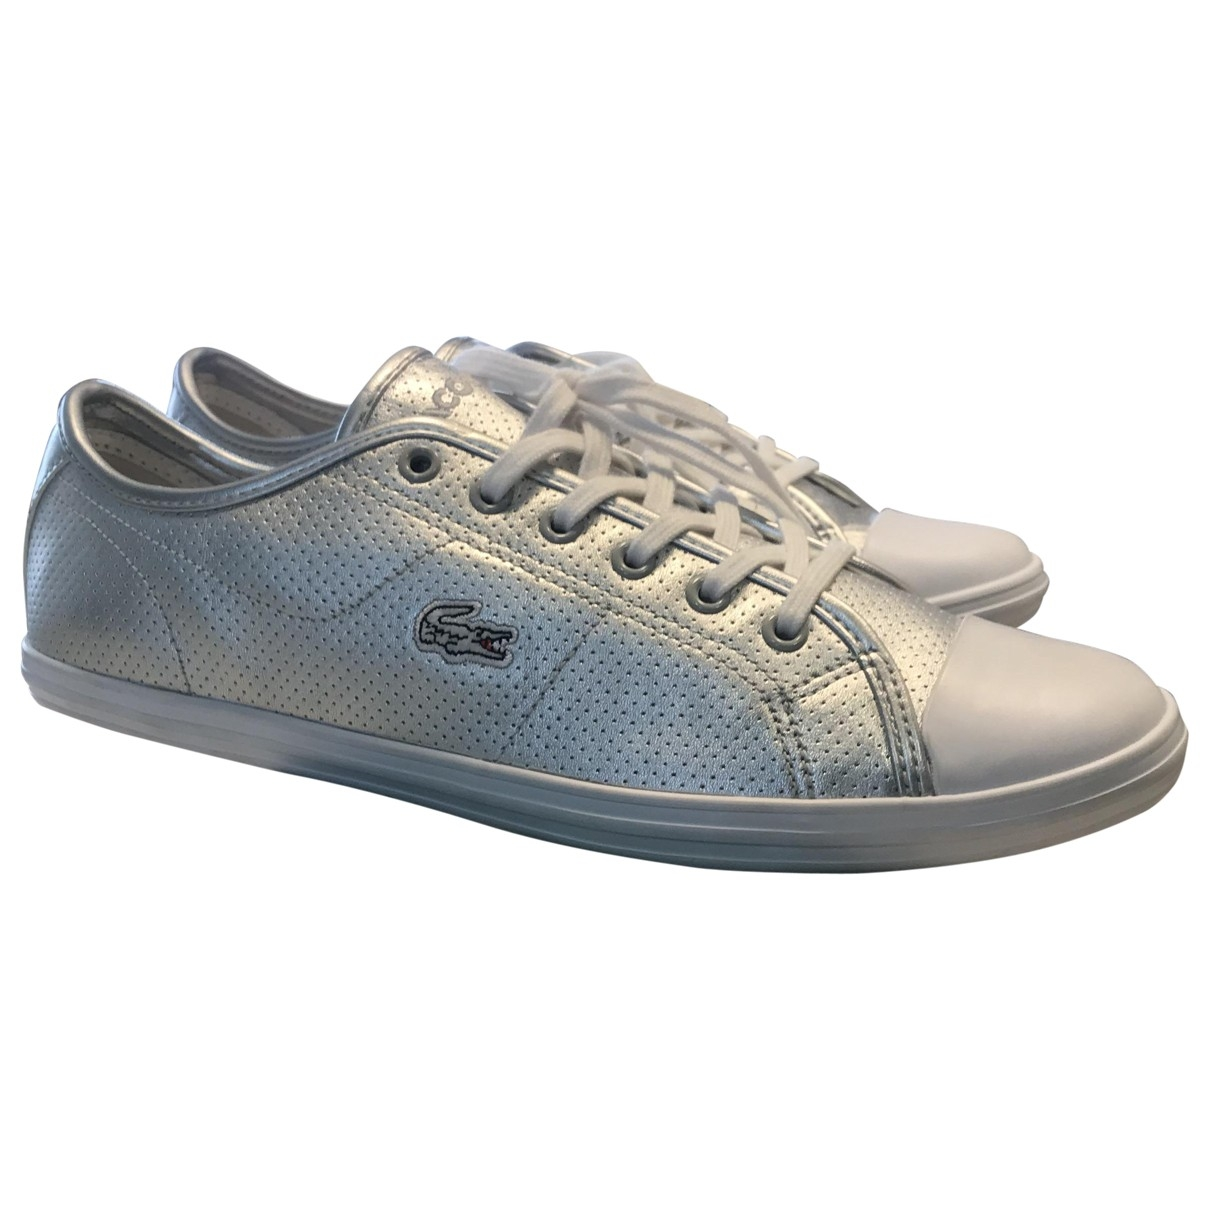 Lacoste \N Silver Leather Trainers for Women 40 EU